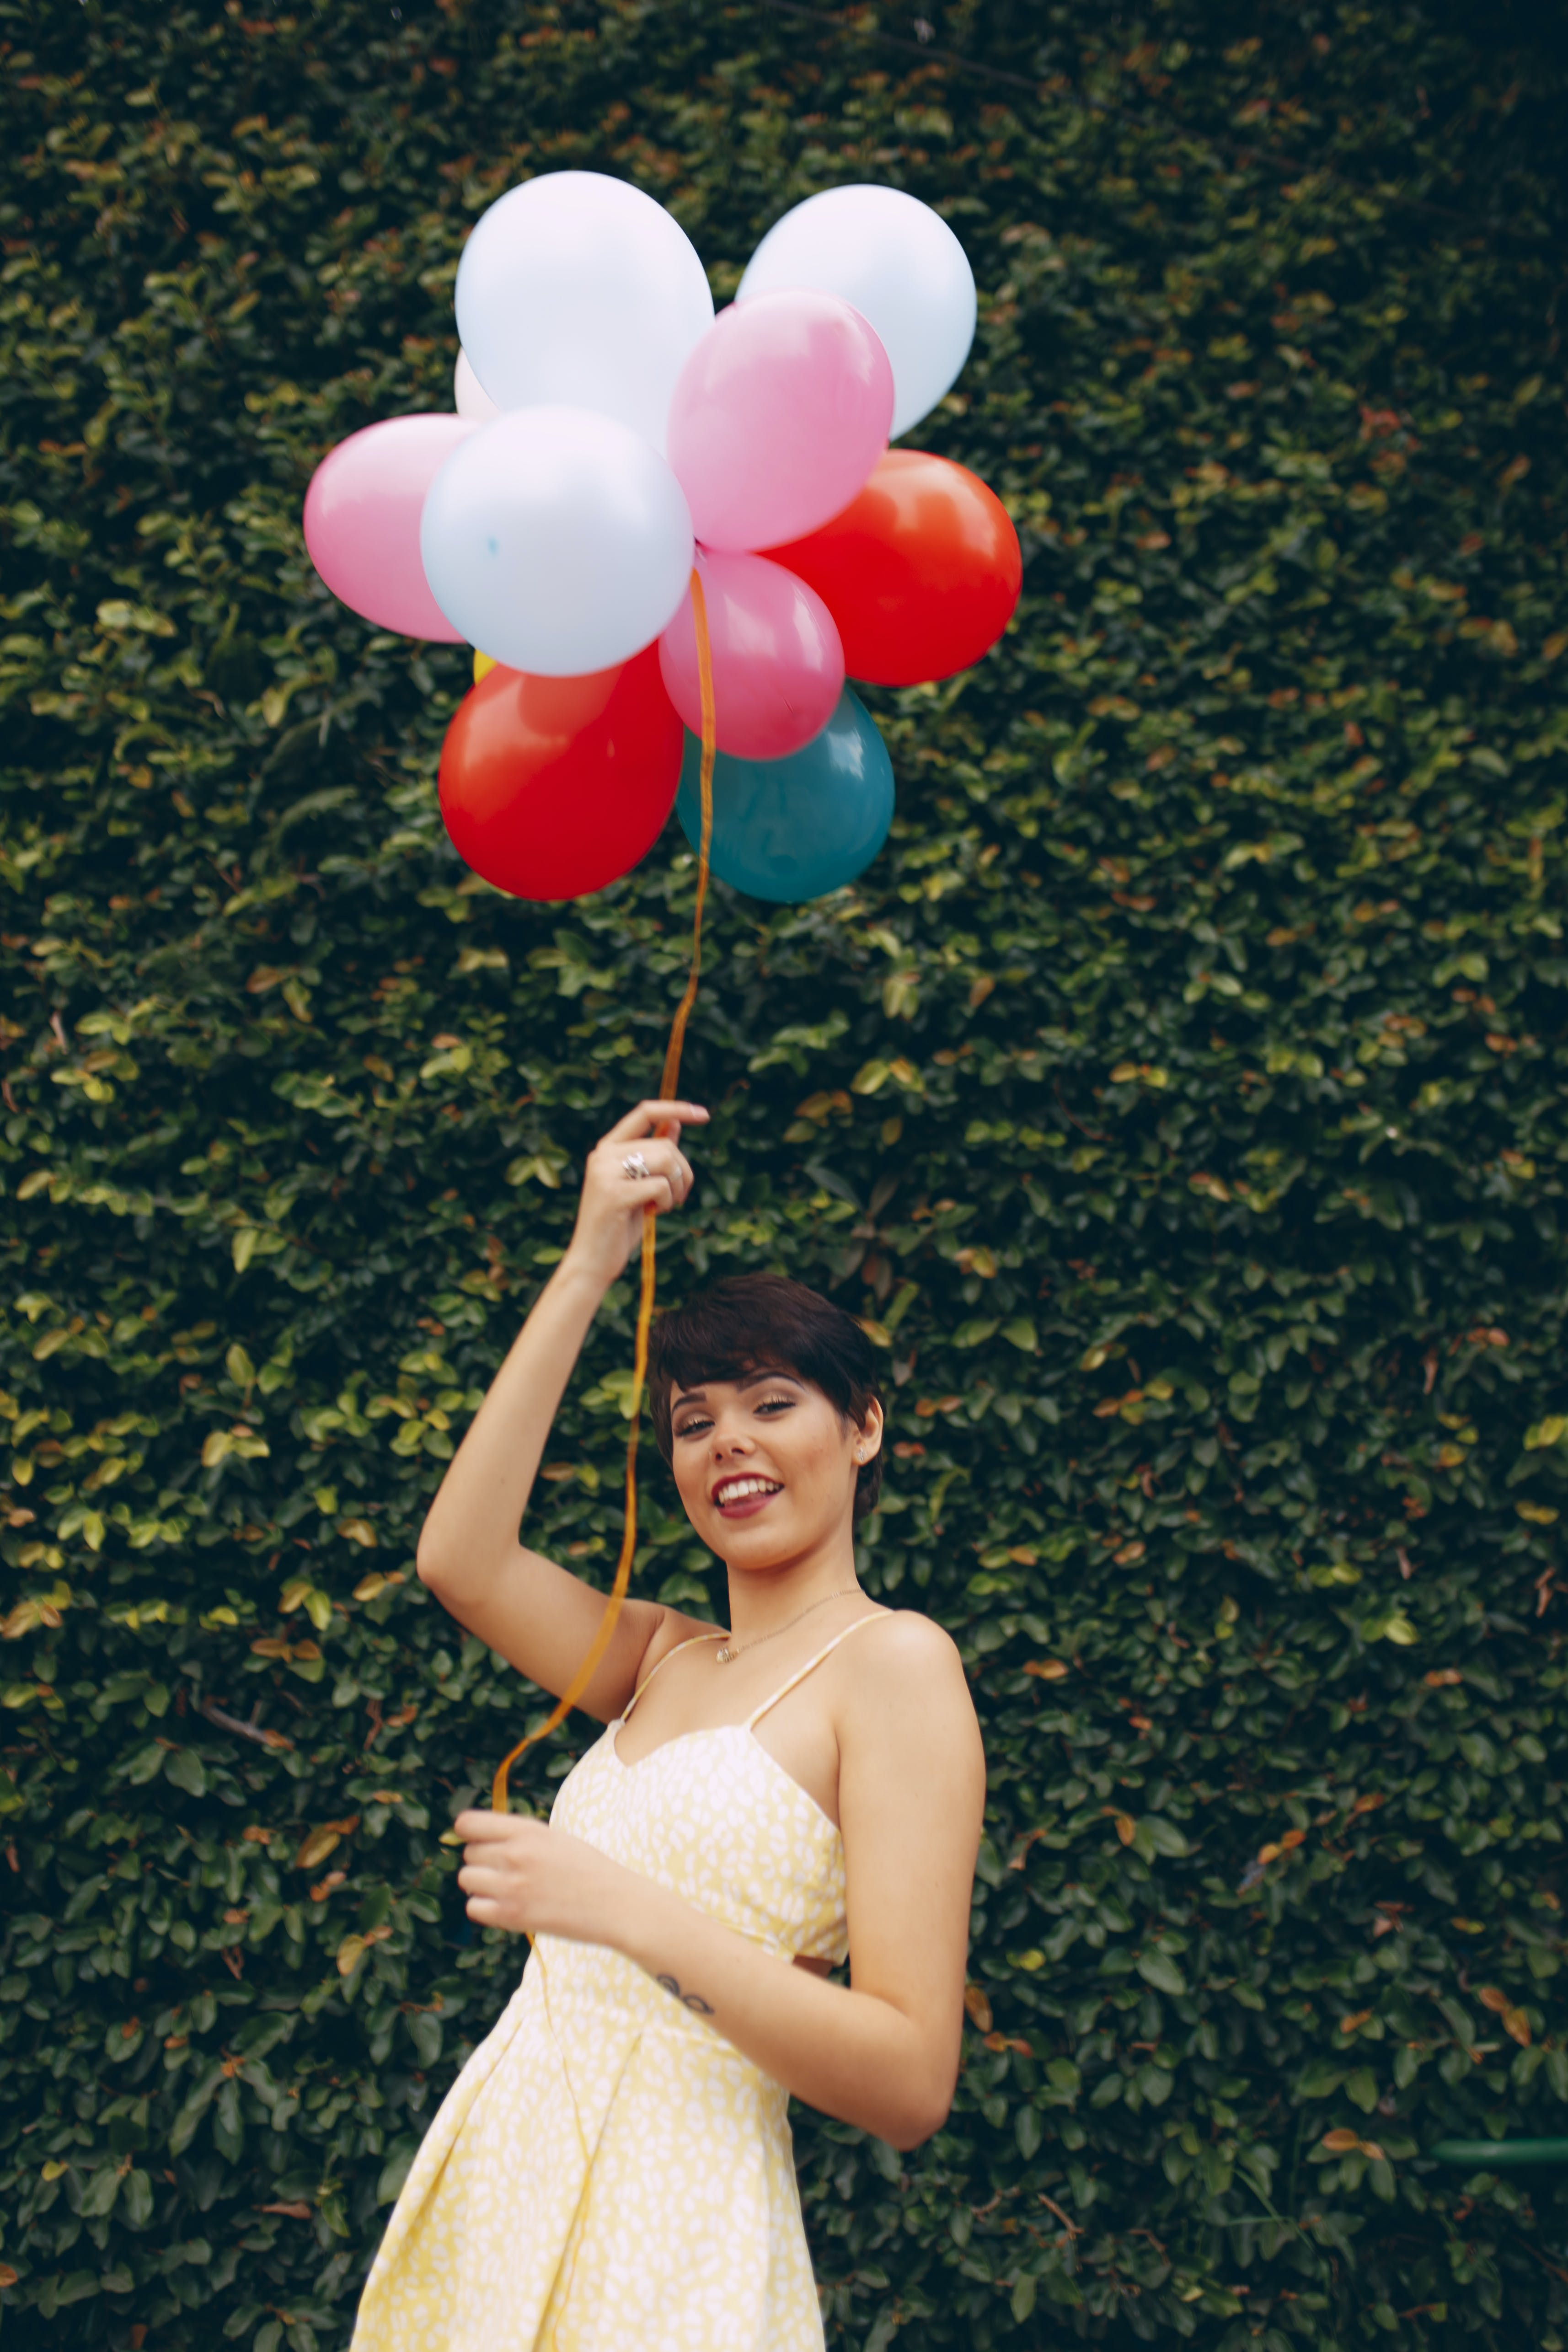 Photo of Smiling Woman Holding Balloons